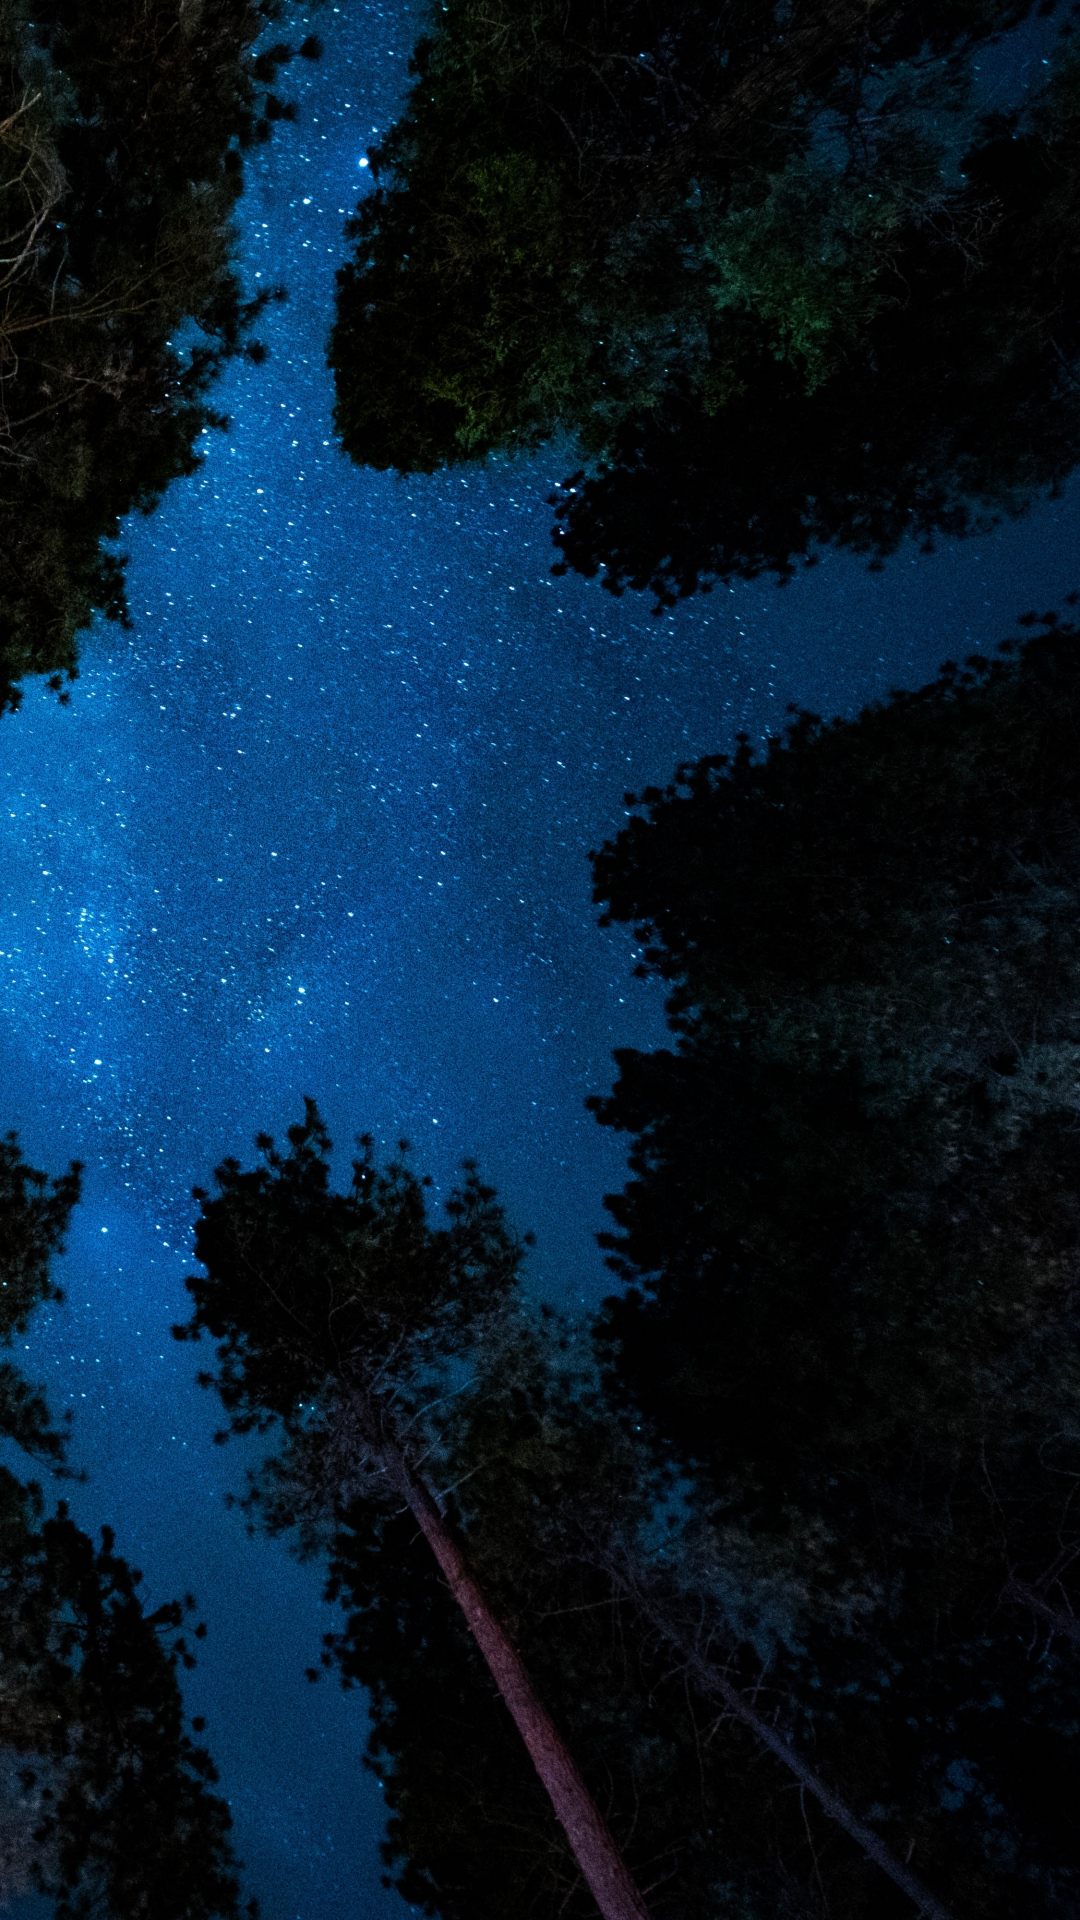 starry sky night trees Forest